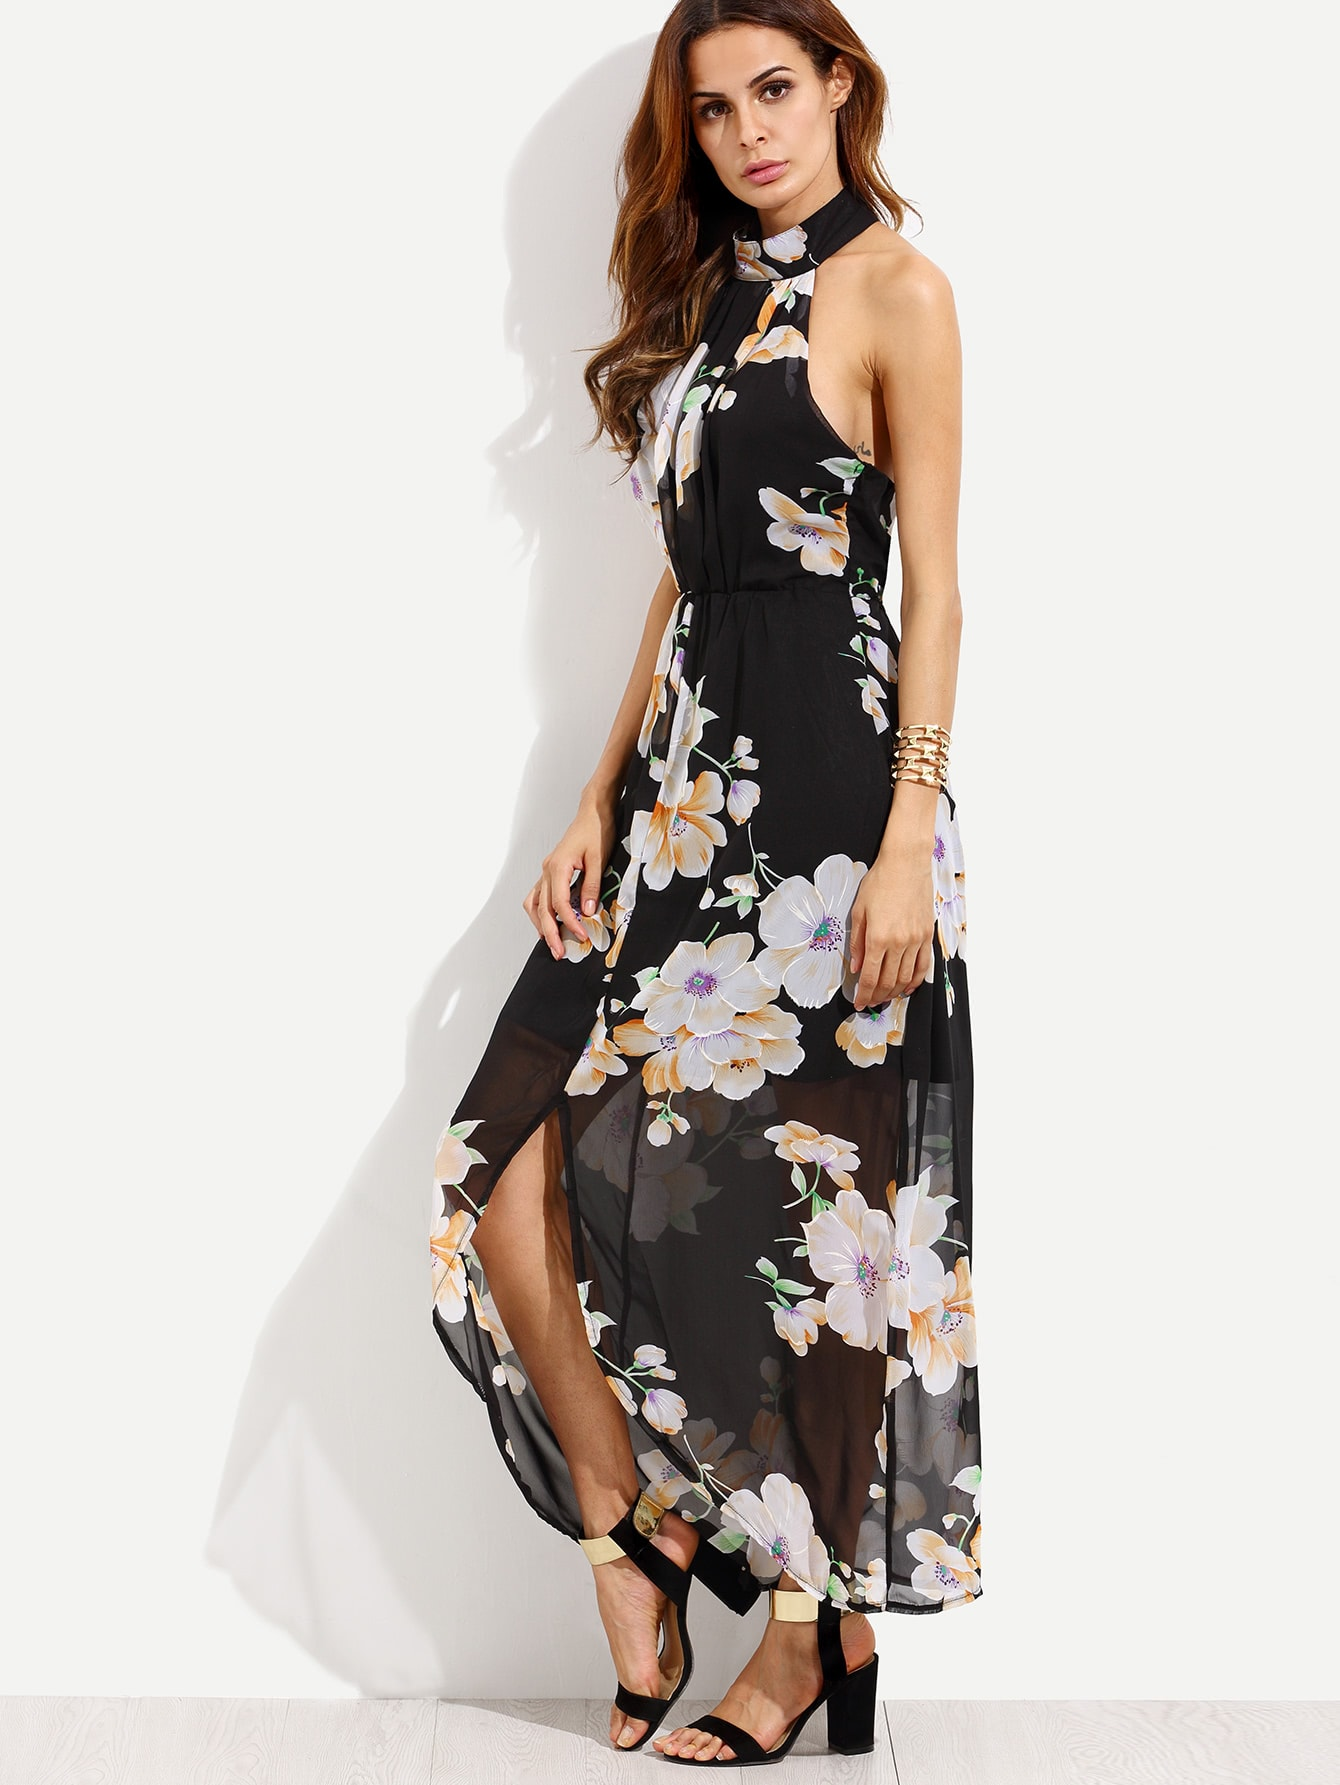 DRESSES. Find fit-and-flare, relaxed-fit, maxi, mini and midi dresses for all occasions.